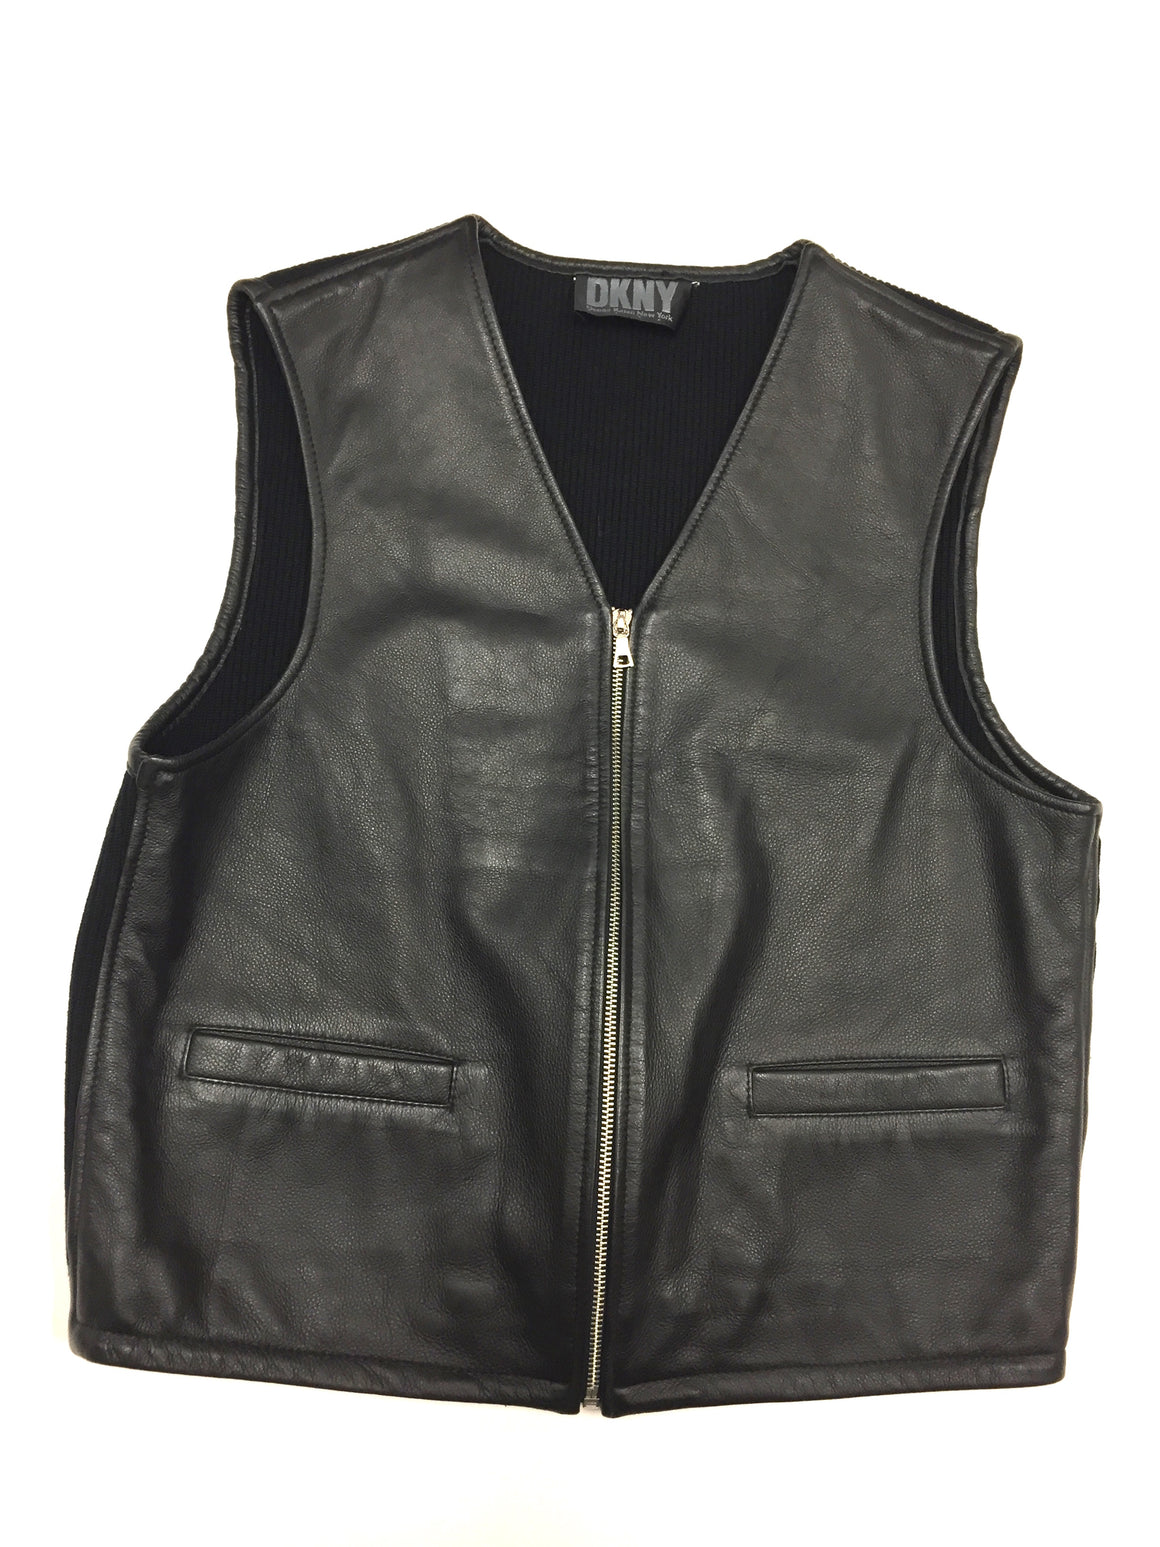 bisbiz.com DKNY - DONNA KARAN  Black Grained Leather & Black Rib-Knit Cotton Men's Vest Size: Small / Medium - Estimated - Bis Luxury Resale